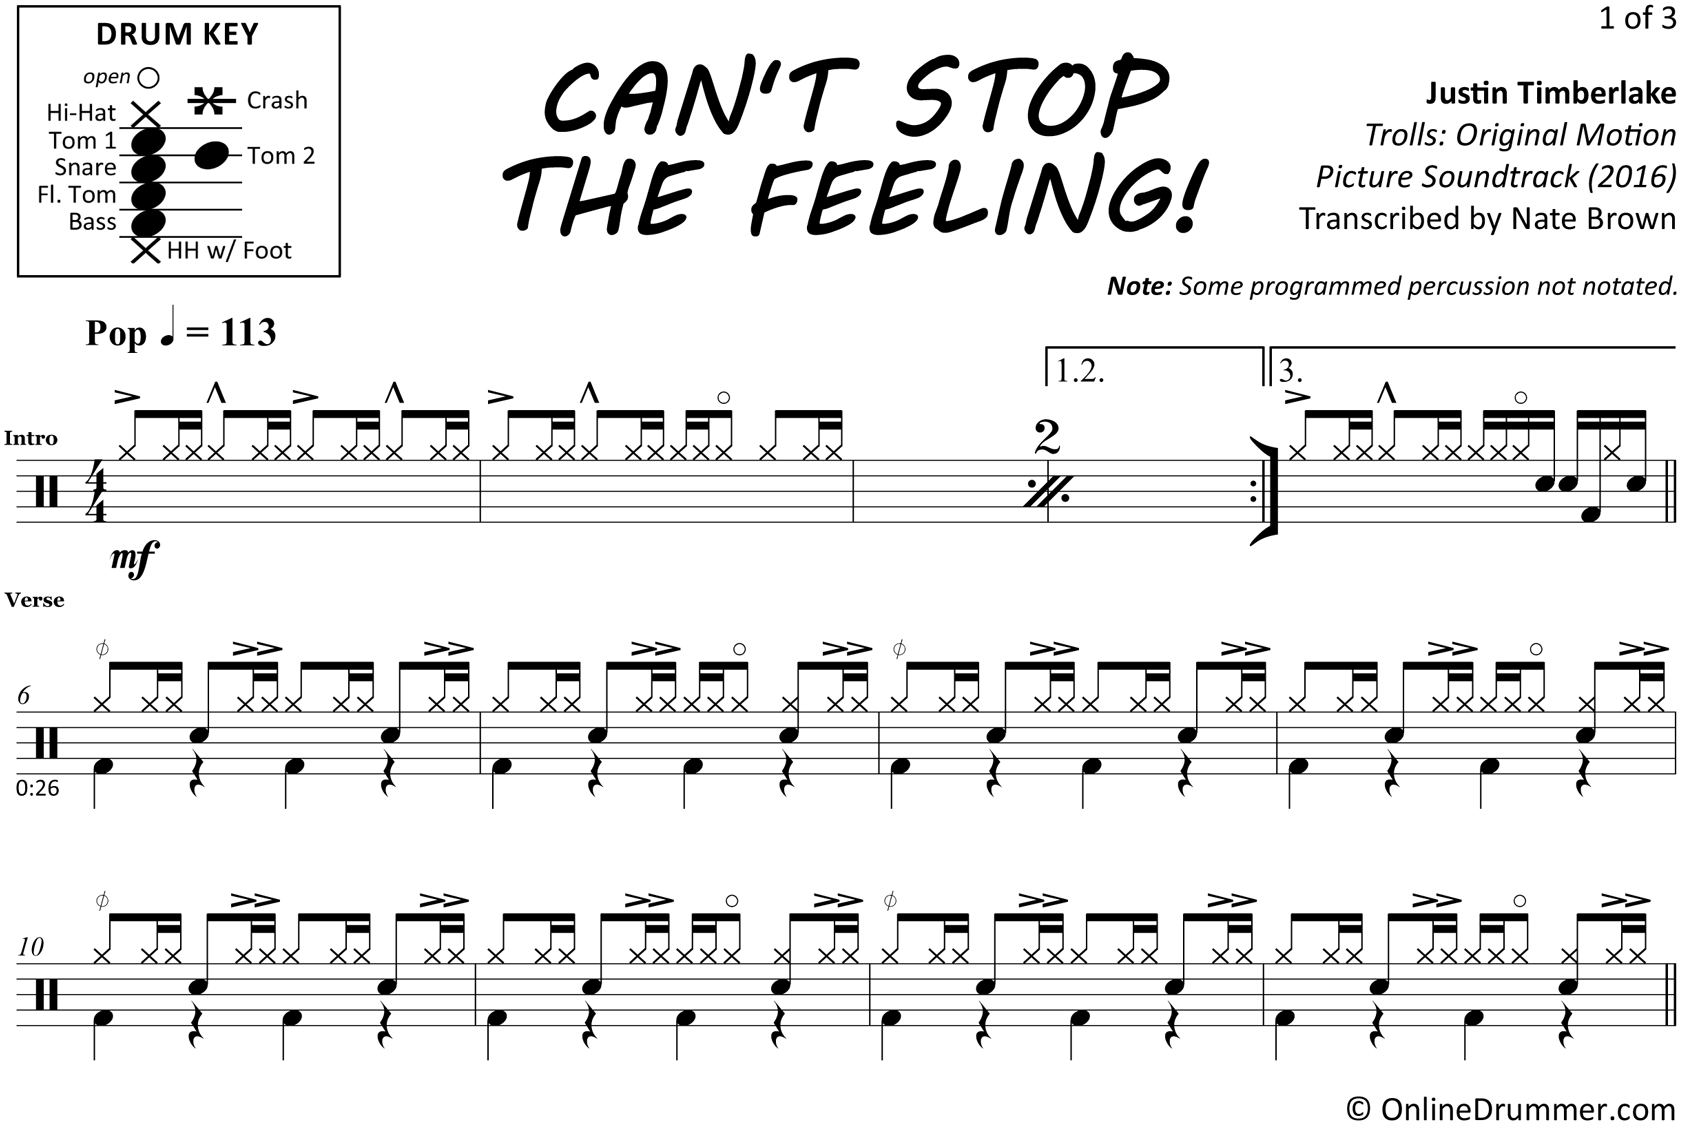 Can't Stop The Feeling - Justin Timberlake - Drum Sheet Music